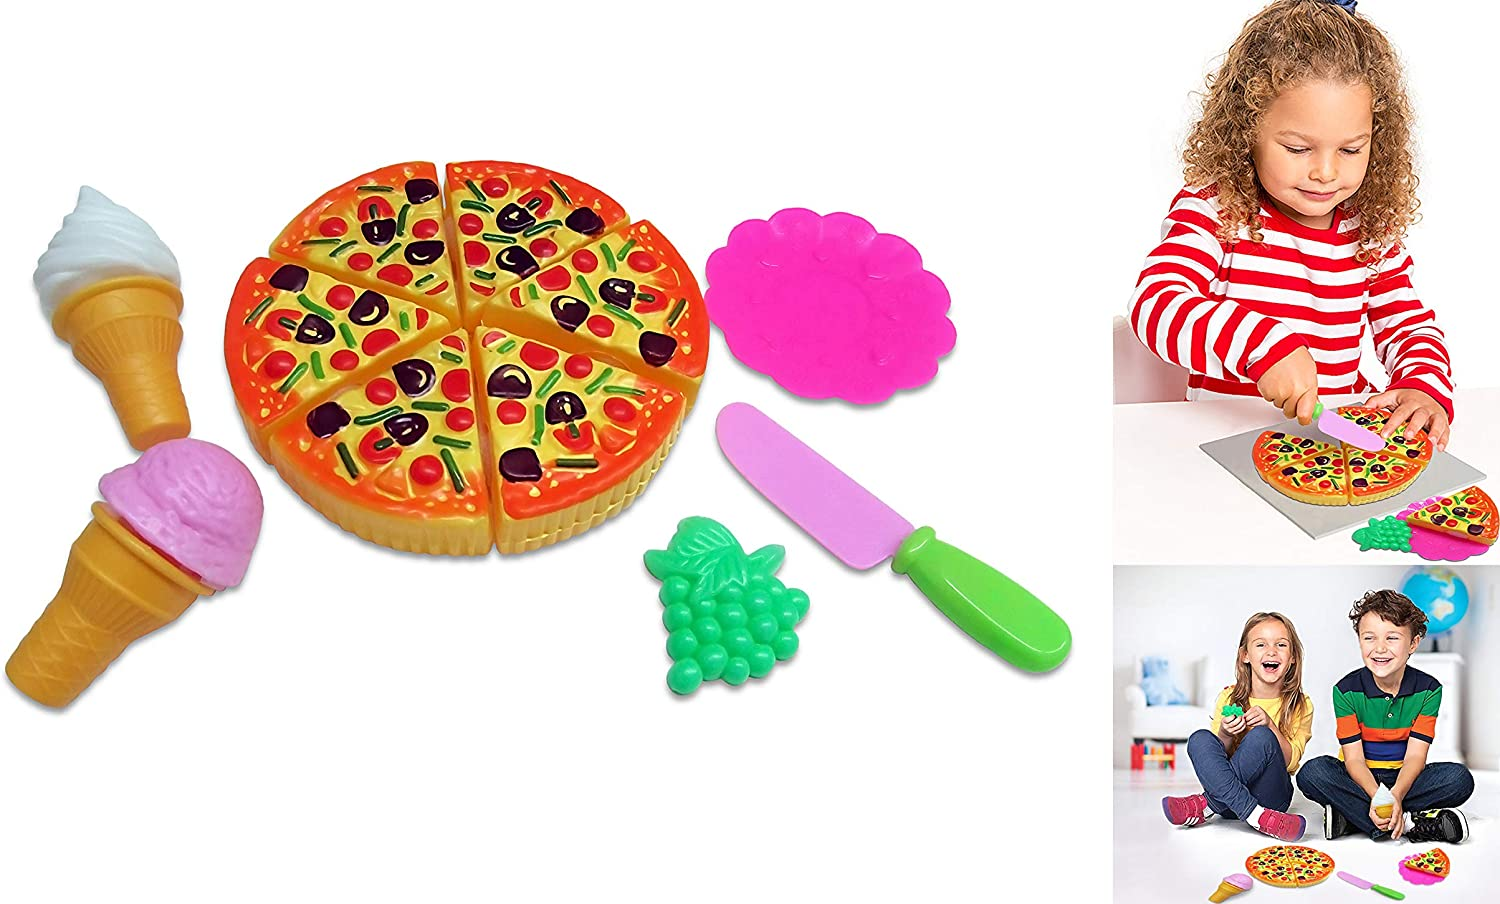 Toy Cubby Kids Toddler Pretend Play Pizza Party Cutting Food and Accessories Set